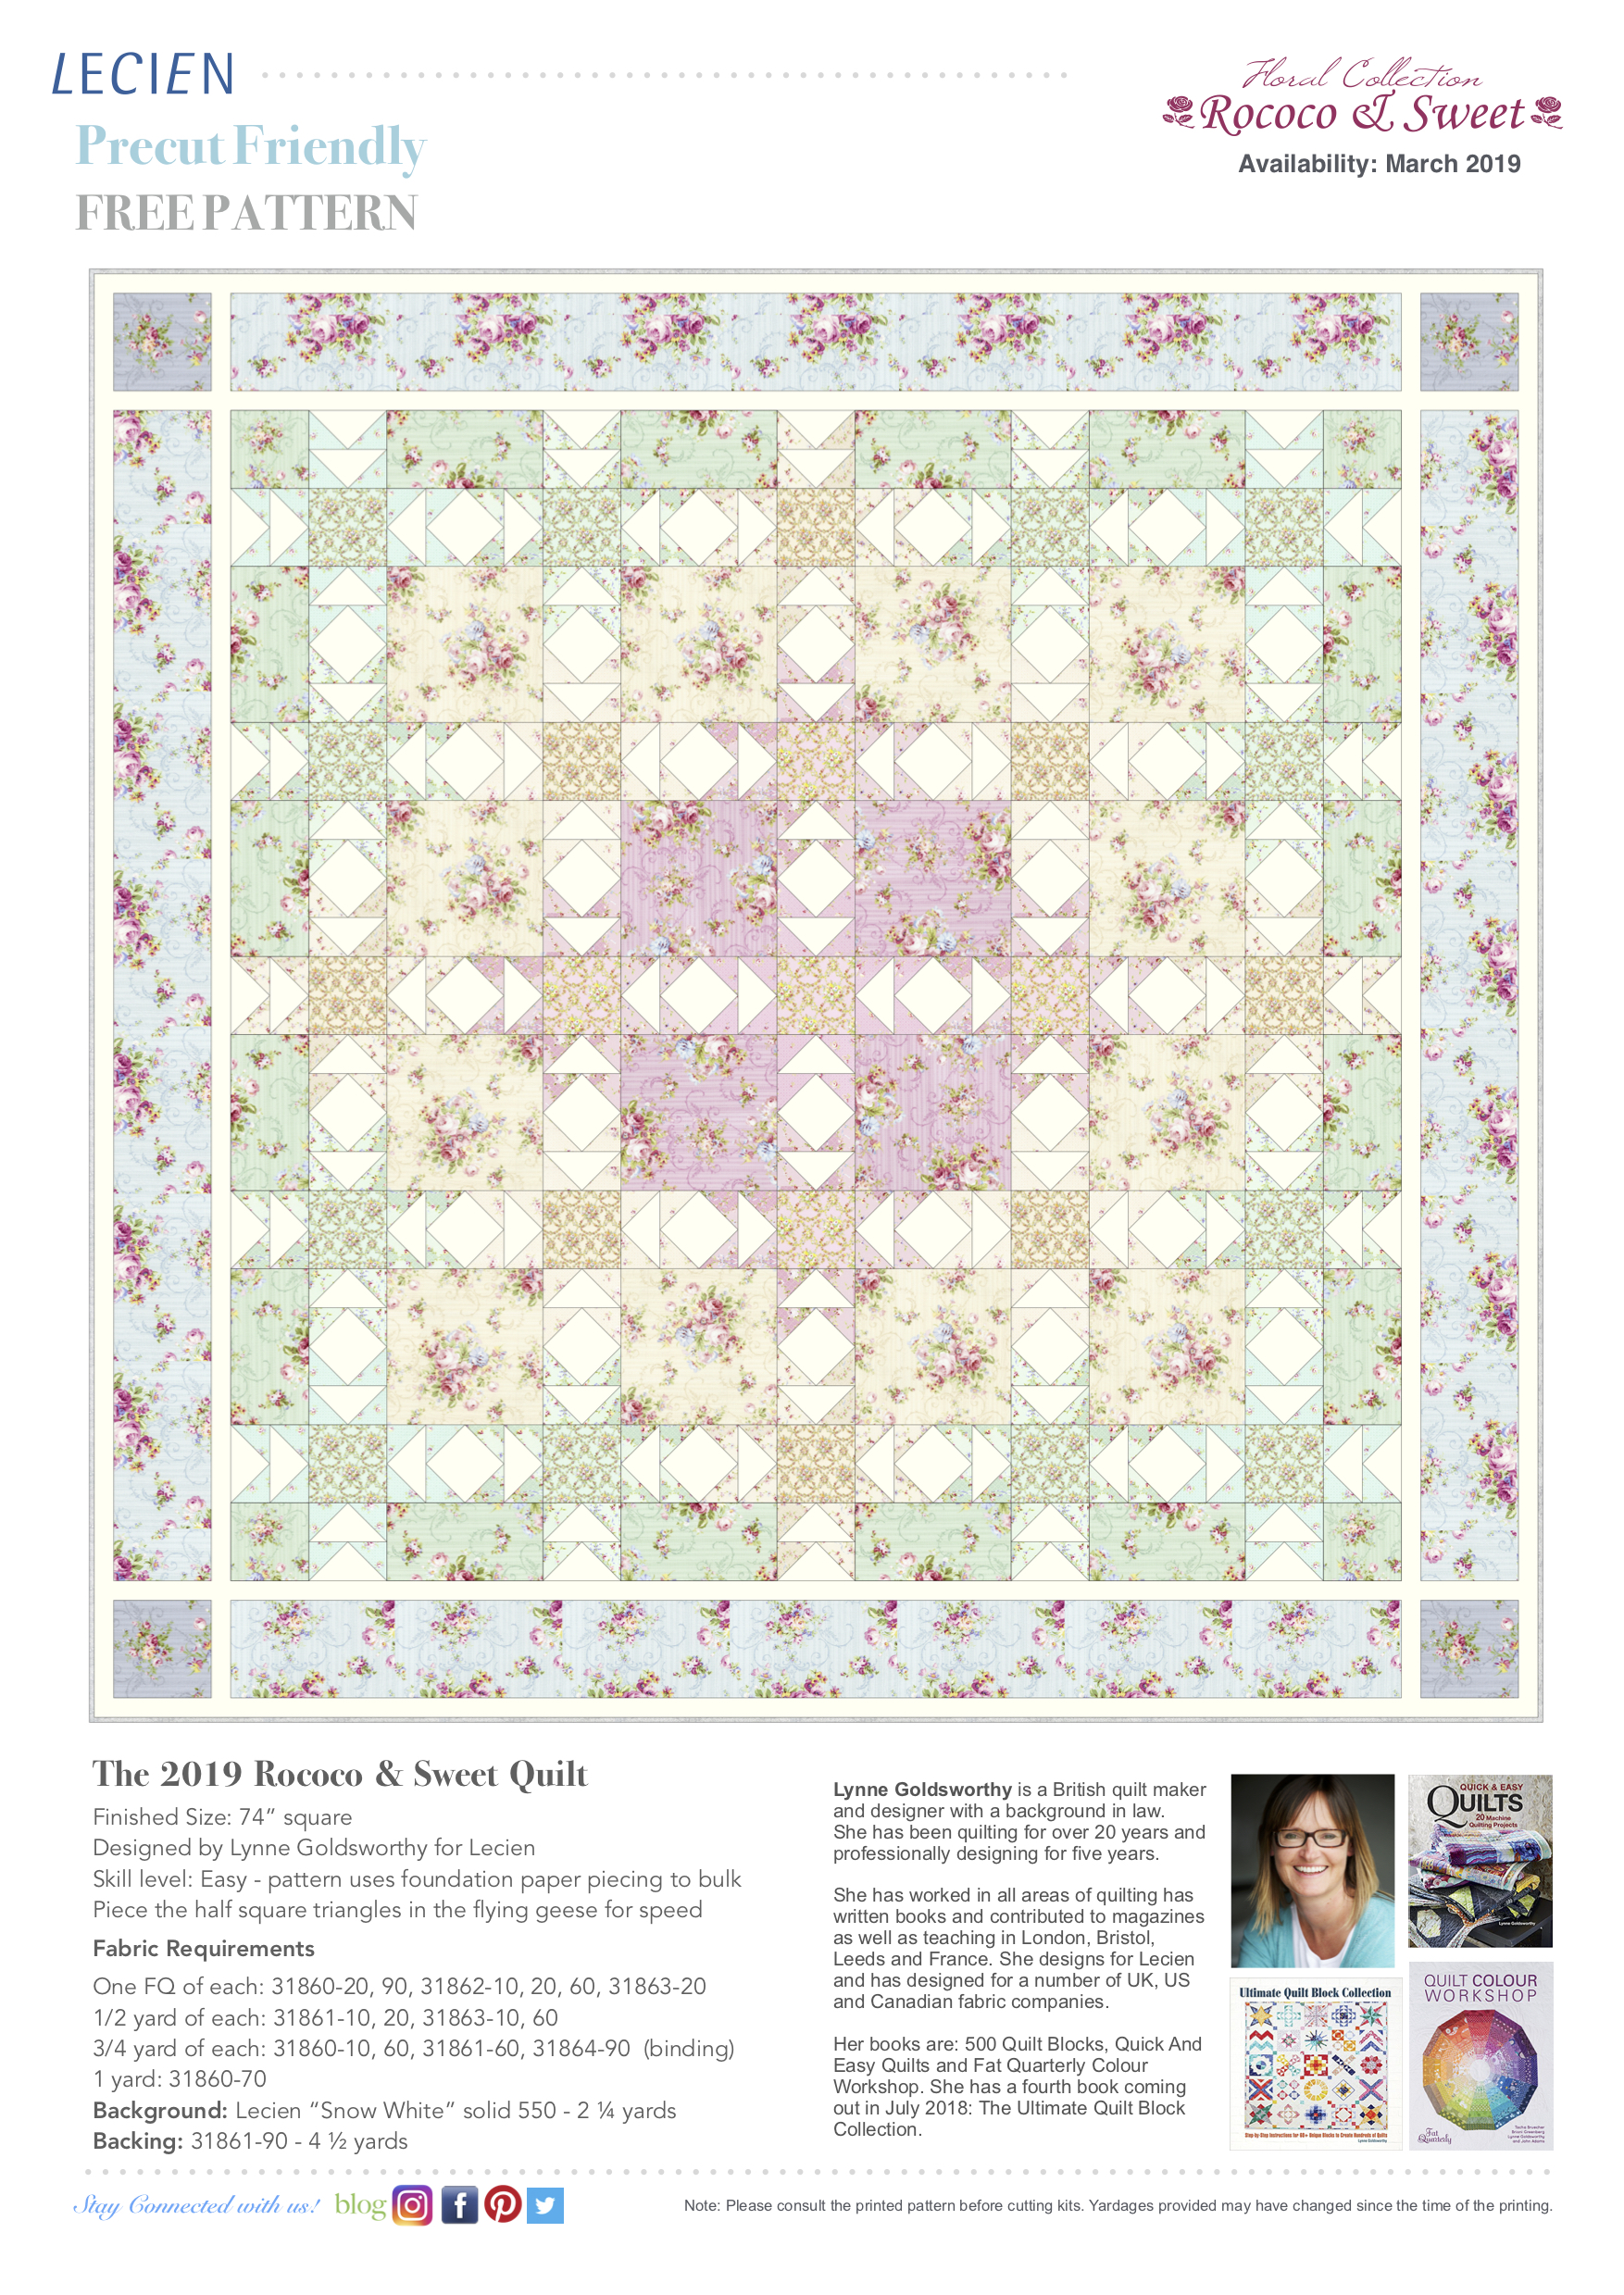 The 2019 Rococo & Sweet Quilt